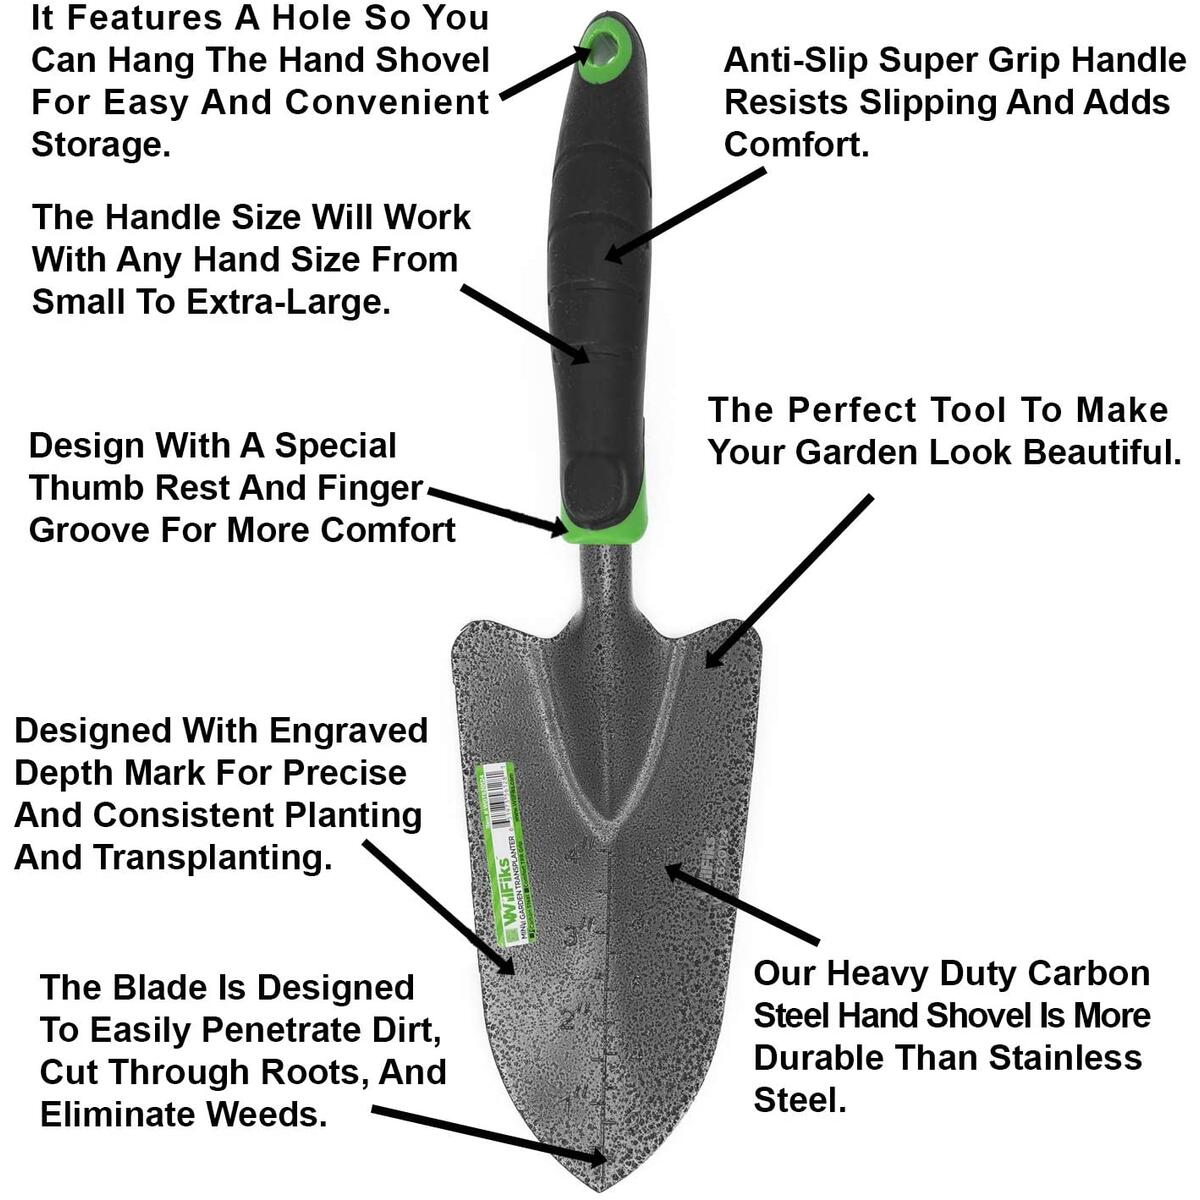 Garden Transplanter Trowel, Hand Shovel for Transplanting, Weeding and Digging in The Garden Bed, Heavy Duty Carbon Steel, Bend Proof Soil Scooper with Depth Marks and an Ergonomic Handle